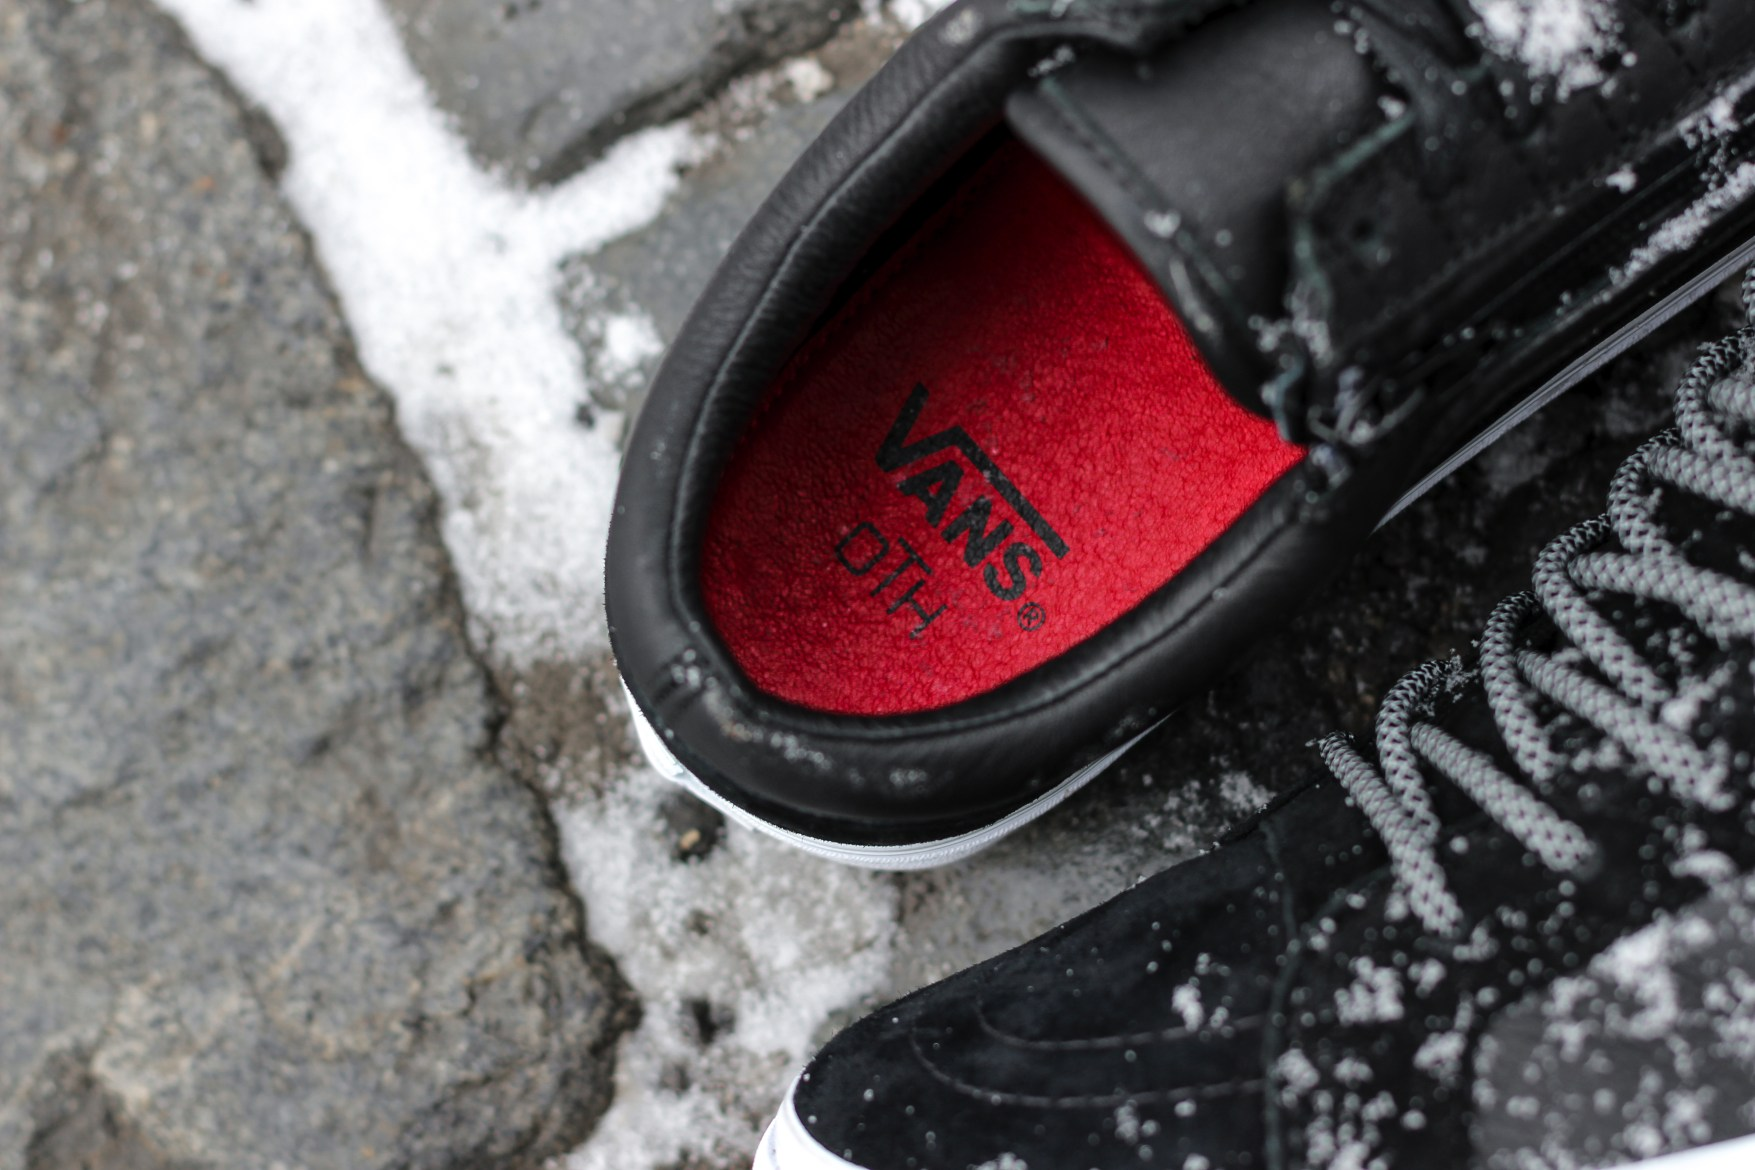 the-raised-by-wolves-x-oth-x-vans-pack-is-fit-for-bracing-the-elements-8.jpg